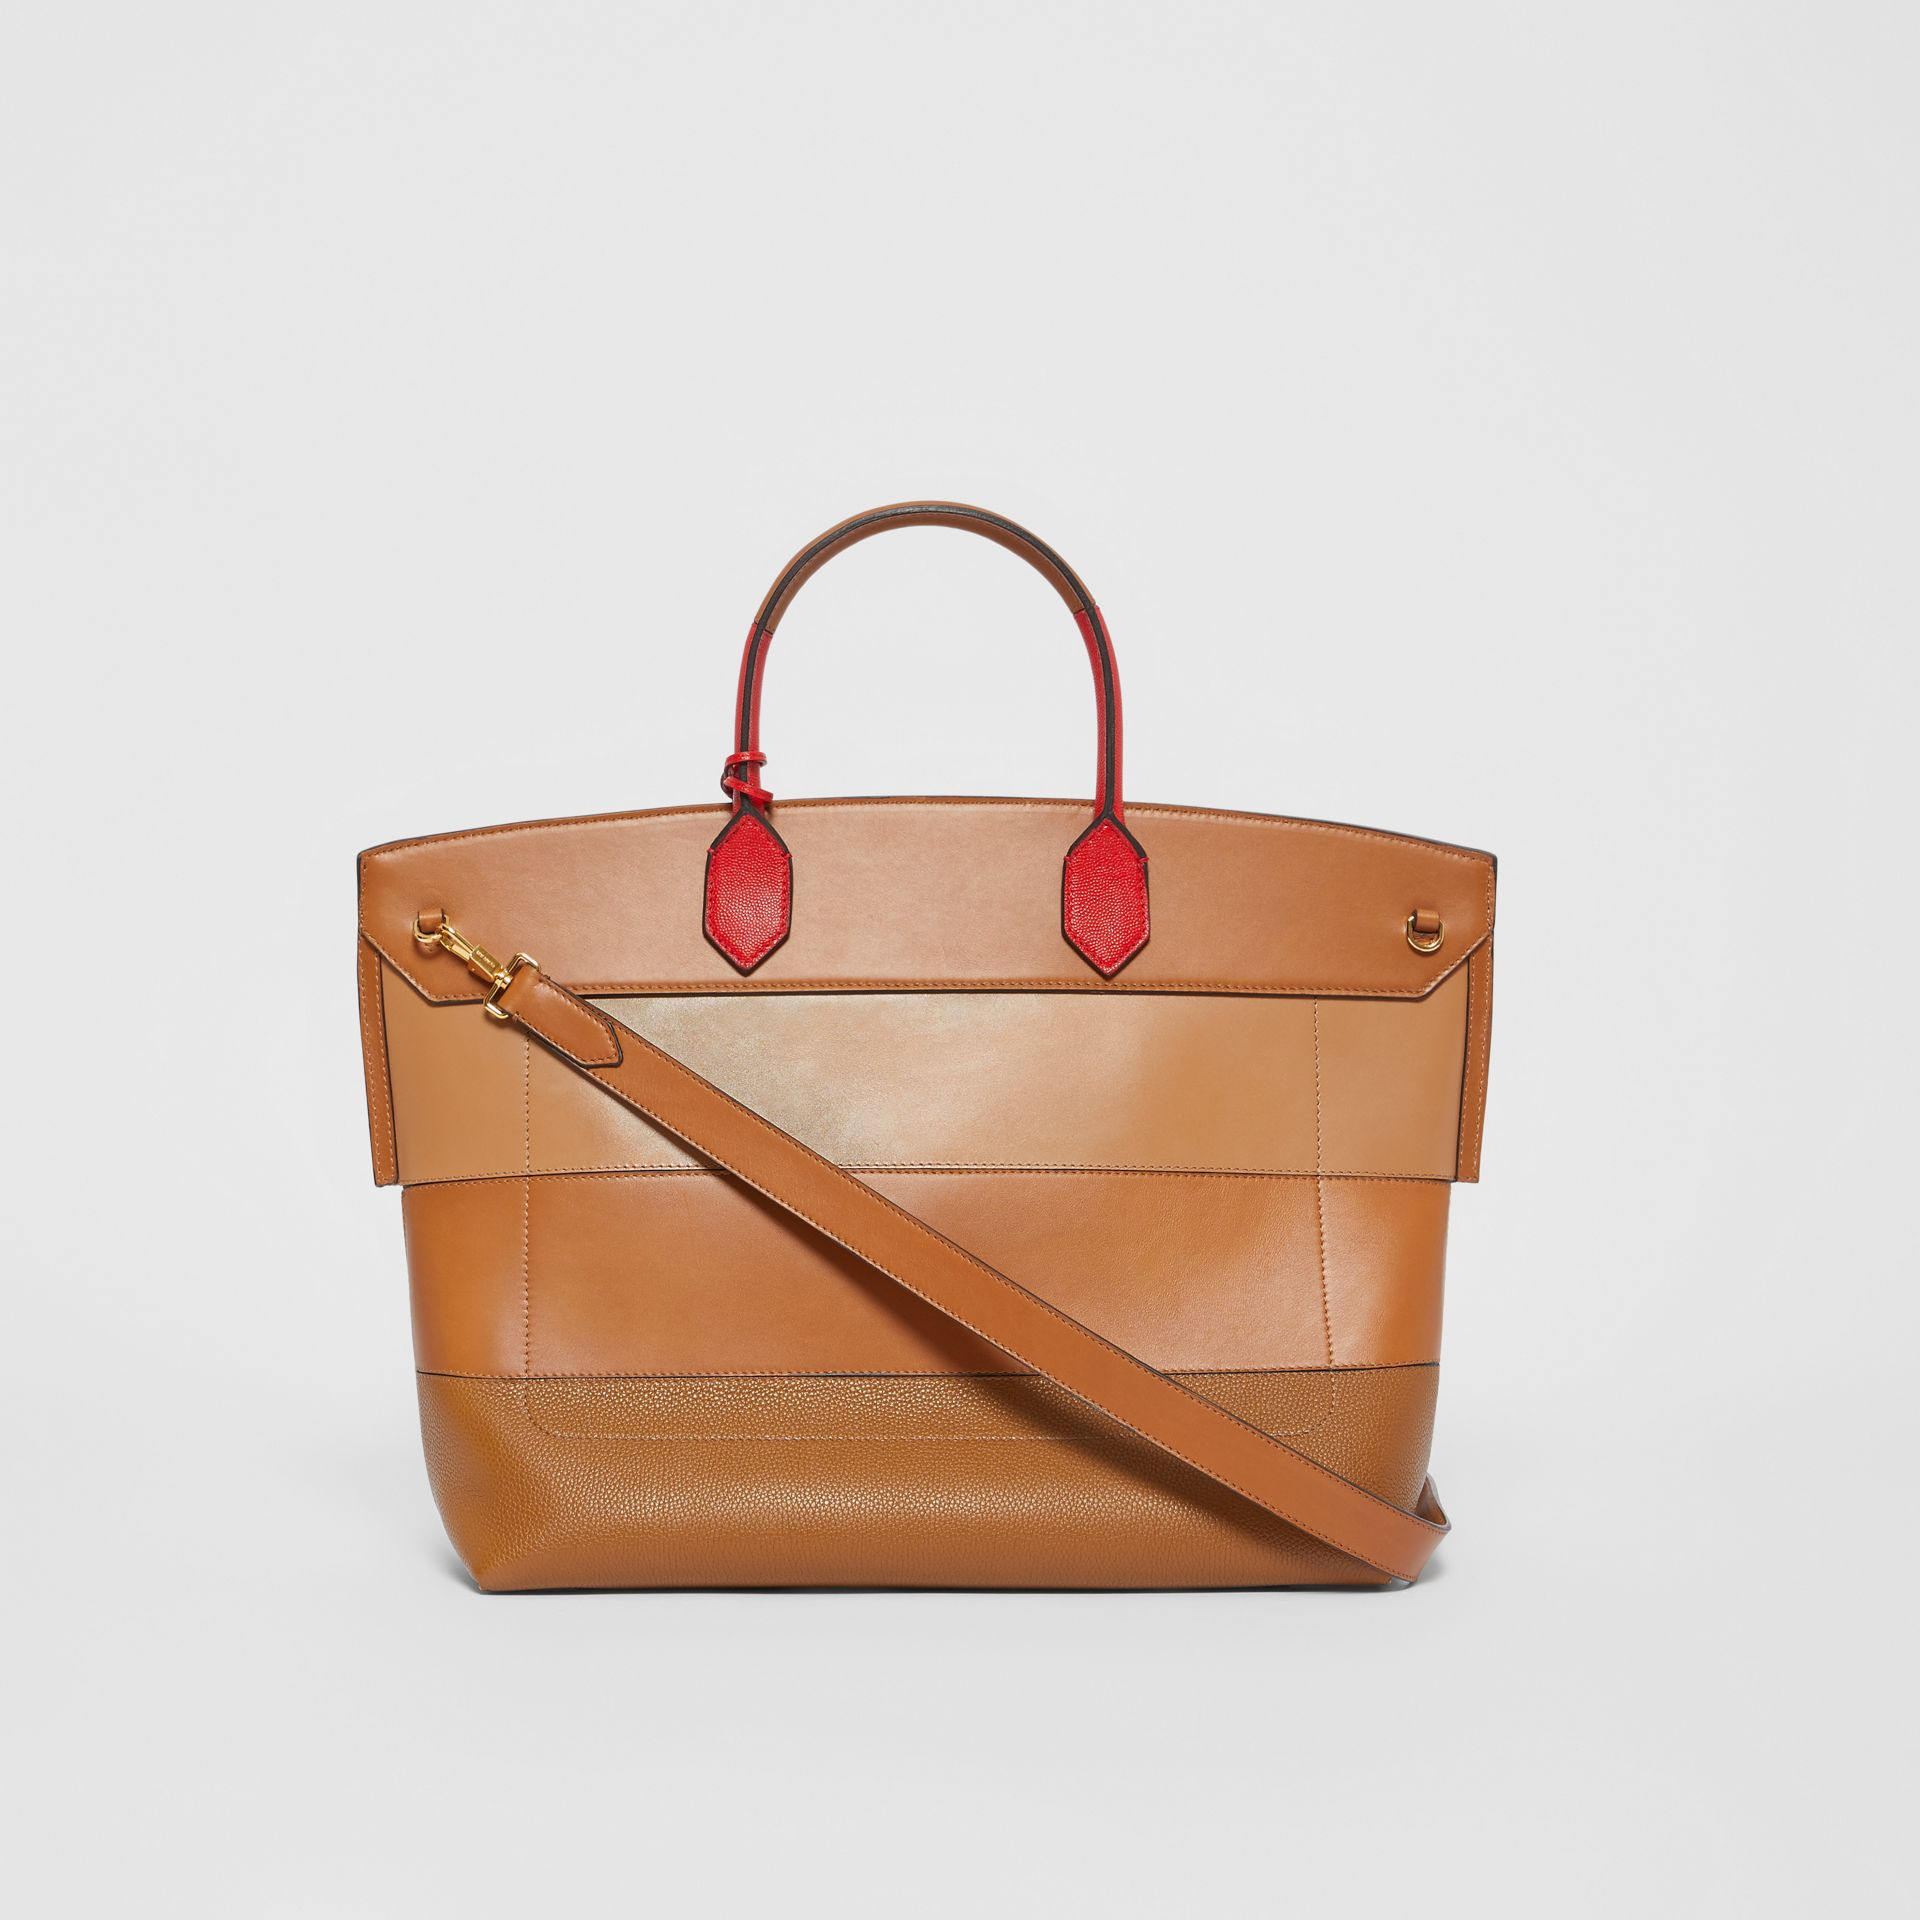 Panelled Leather Society Top Handle Bag in Warm Camel - Women | Burberry United Kingdom - gallery image 7